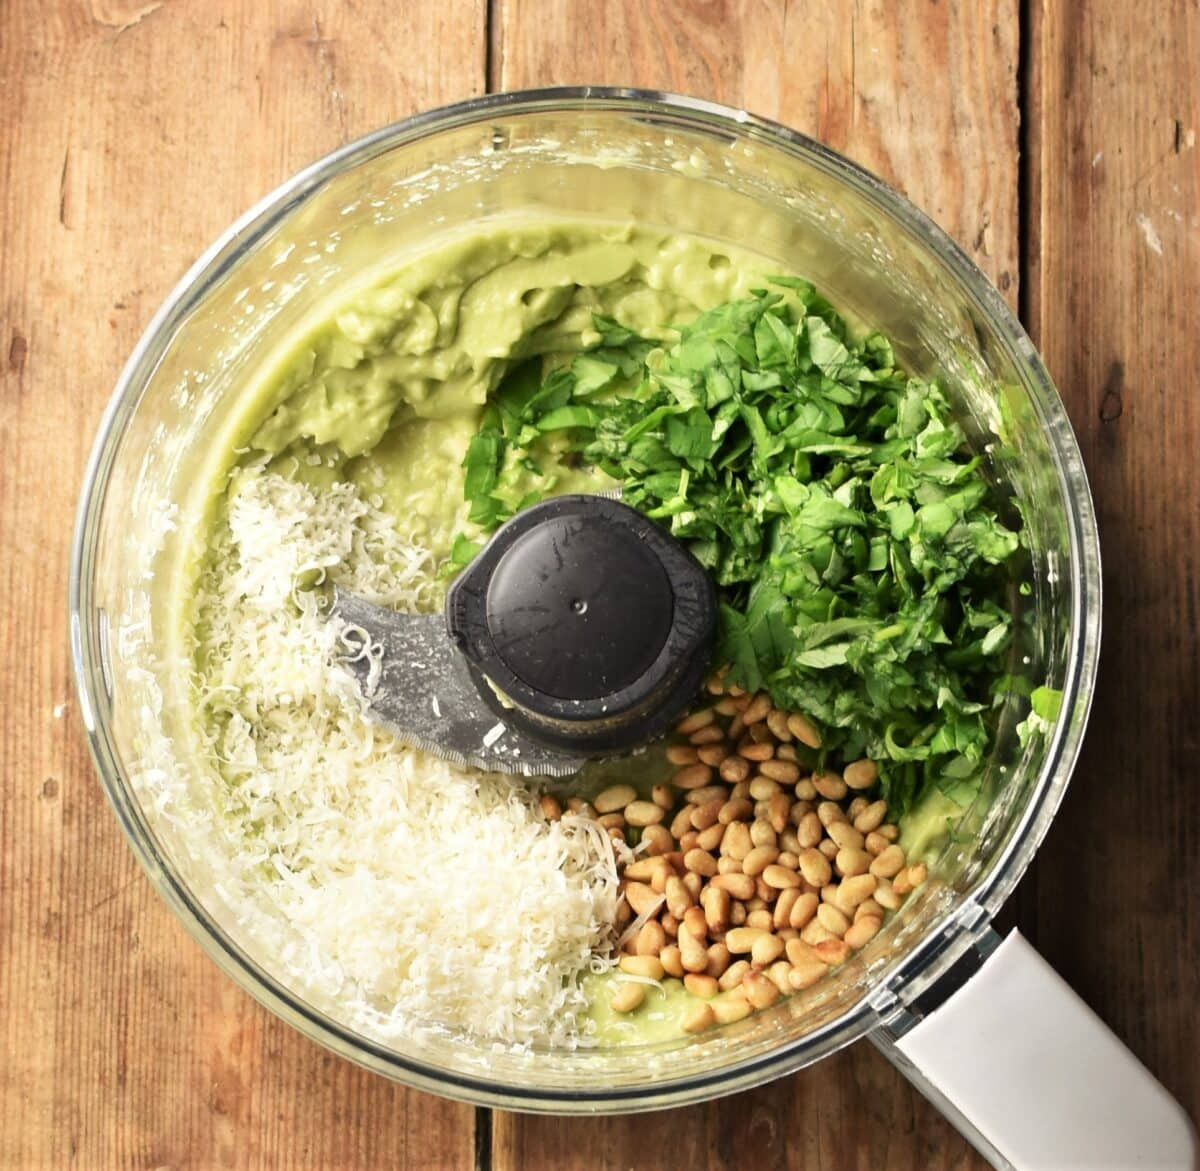 Avocado pesto ingredients in blender.